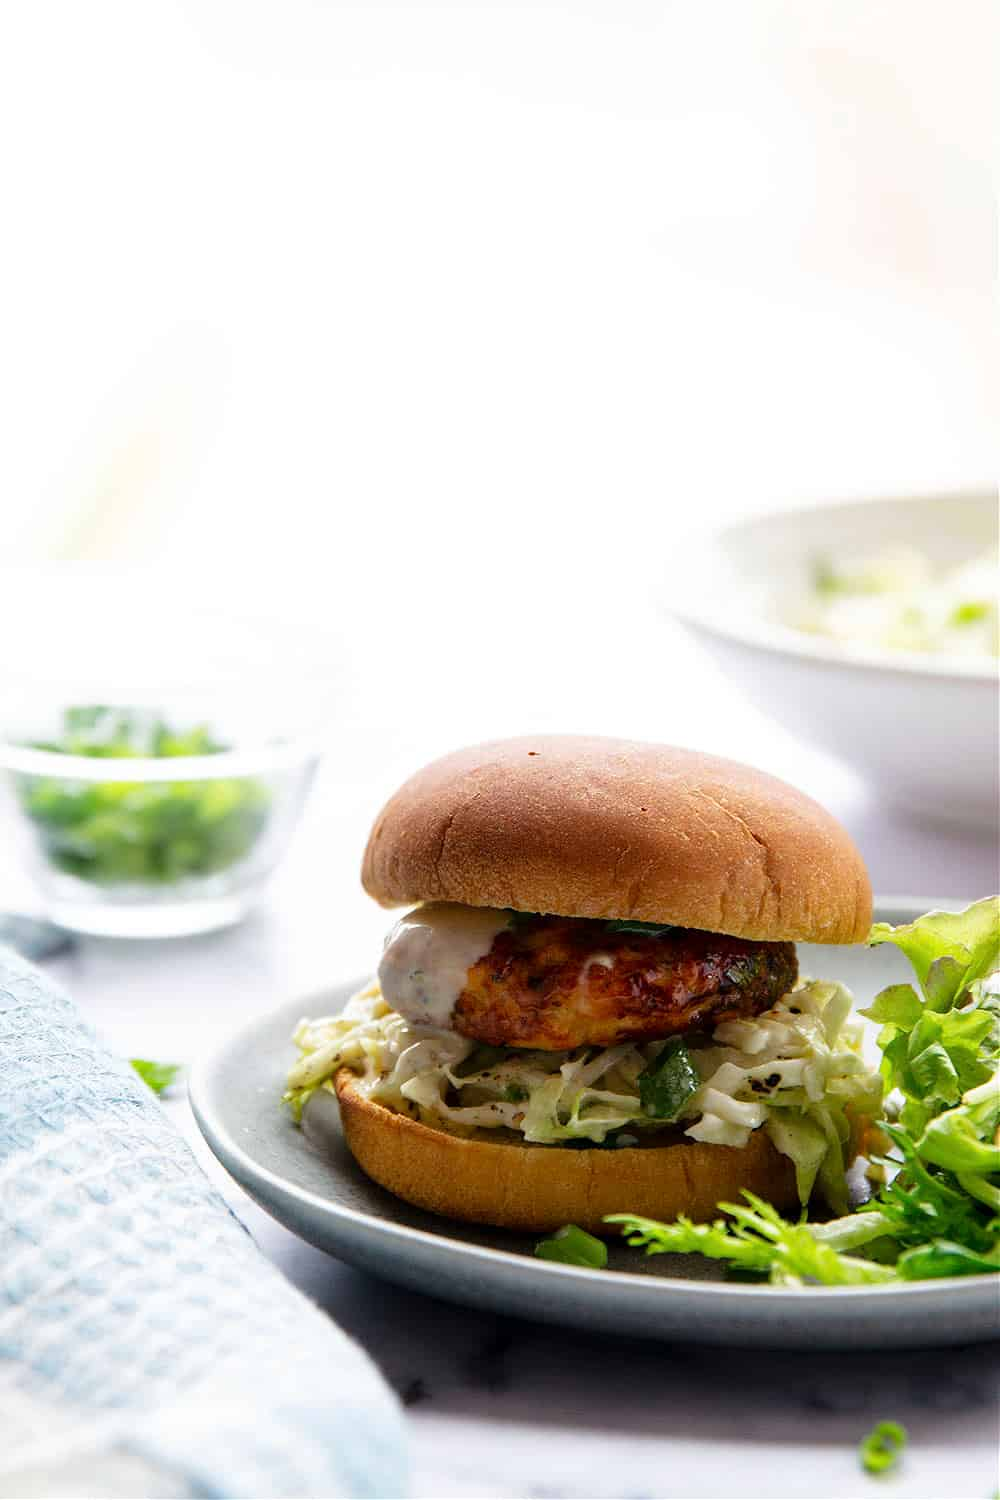 Air fryer salmon patties are perfectly juicy and use fresh salmon for the best flavor! Pile these salmon patties in a soft bun with lots of flavorful tahini slaw.